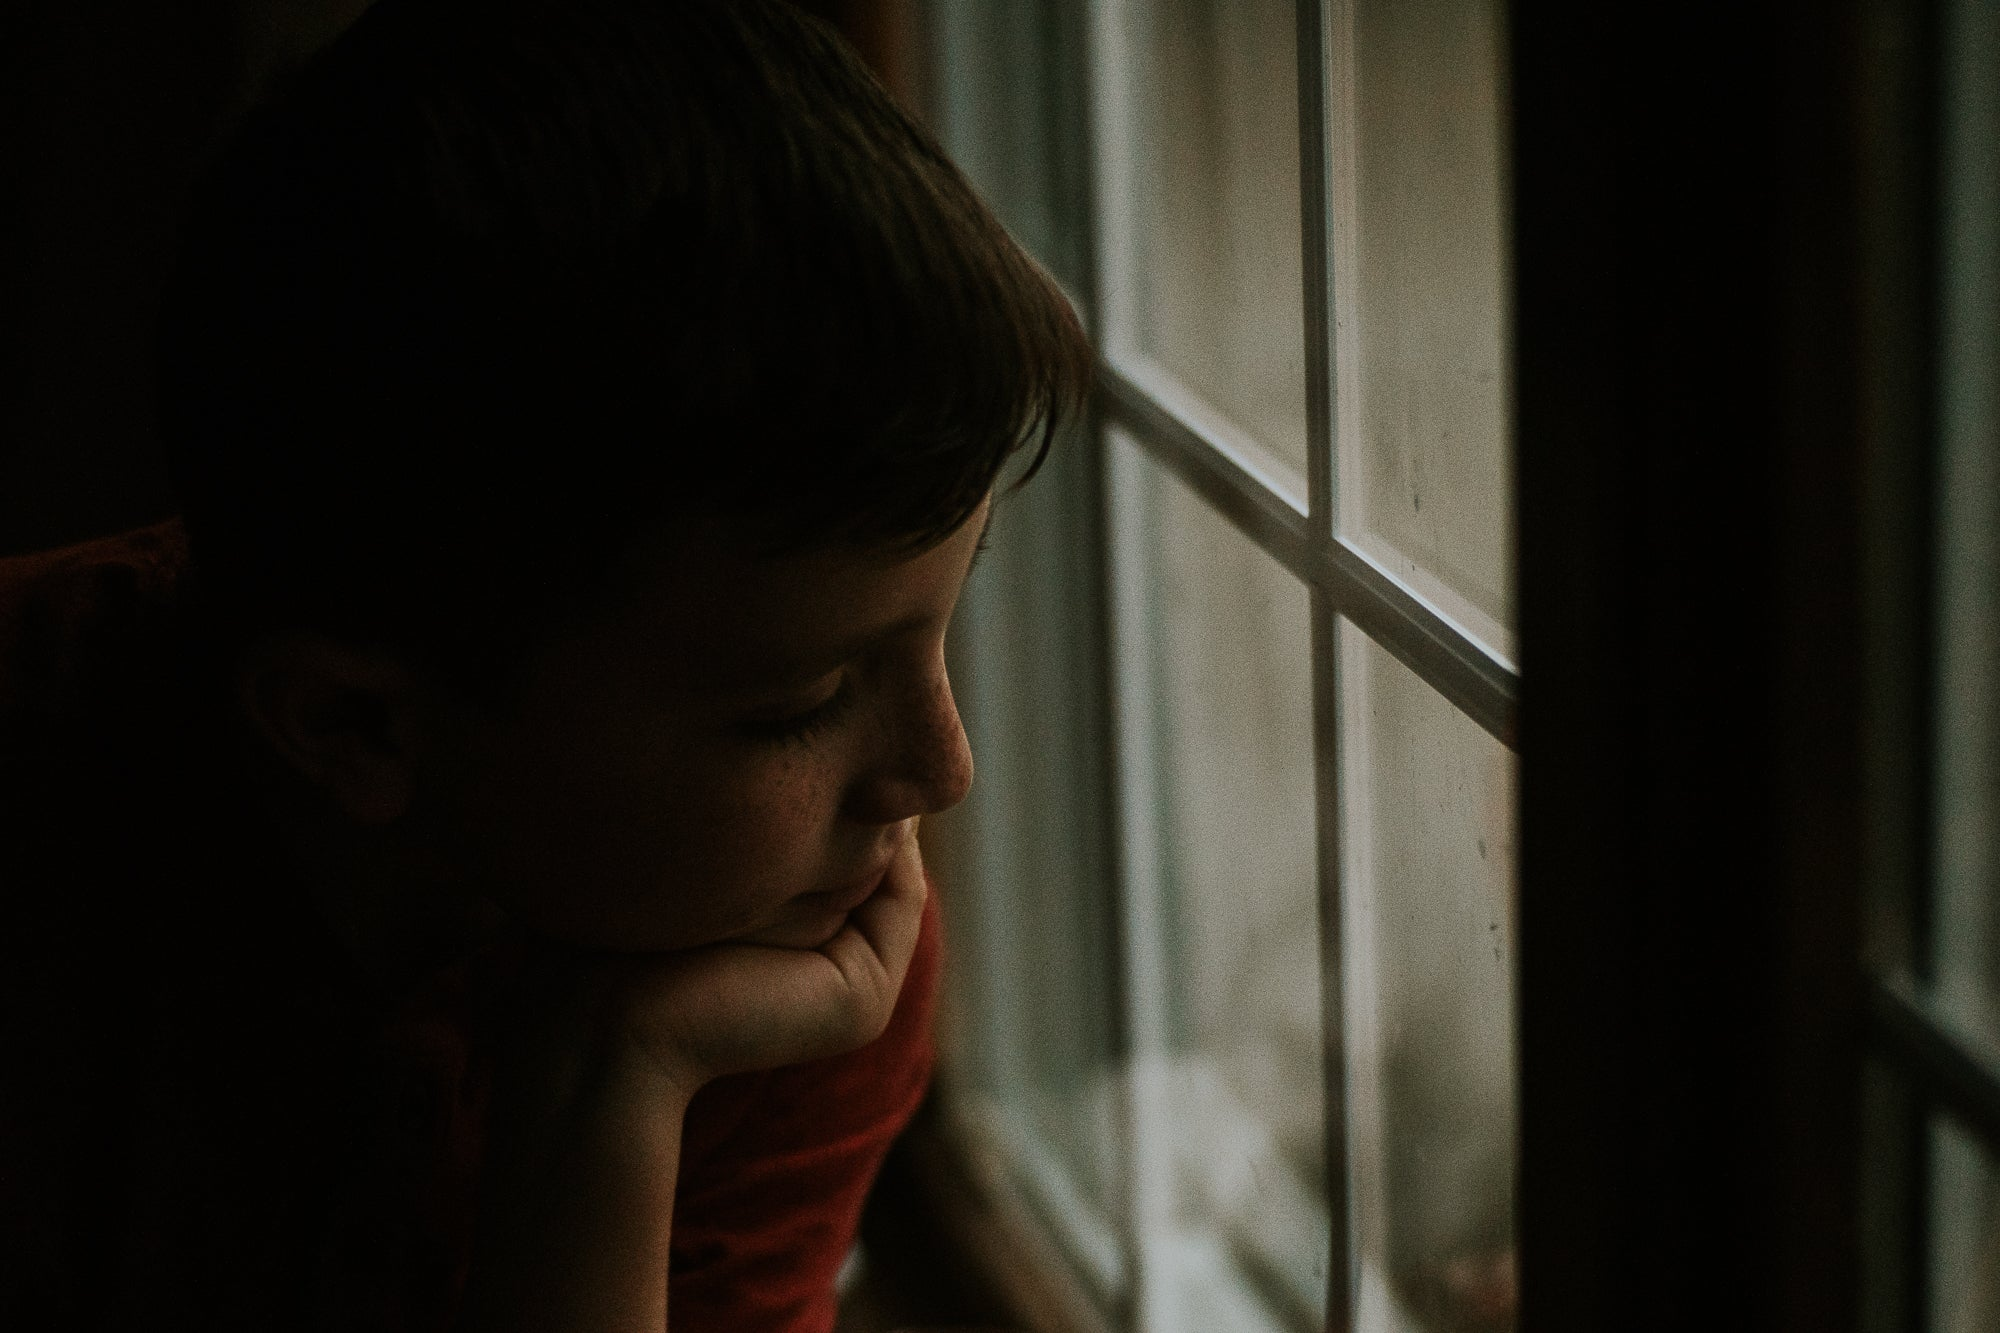 boy with freckles looks out the window with chin in hand lost look journey story amy cyphers